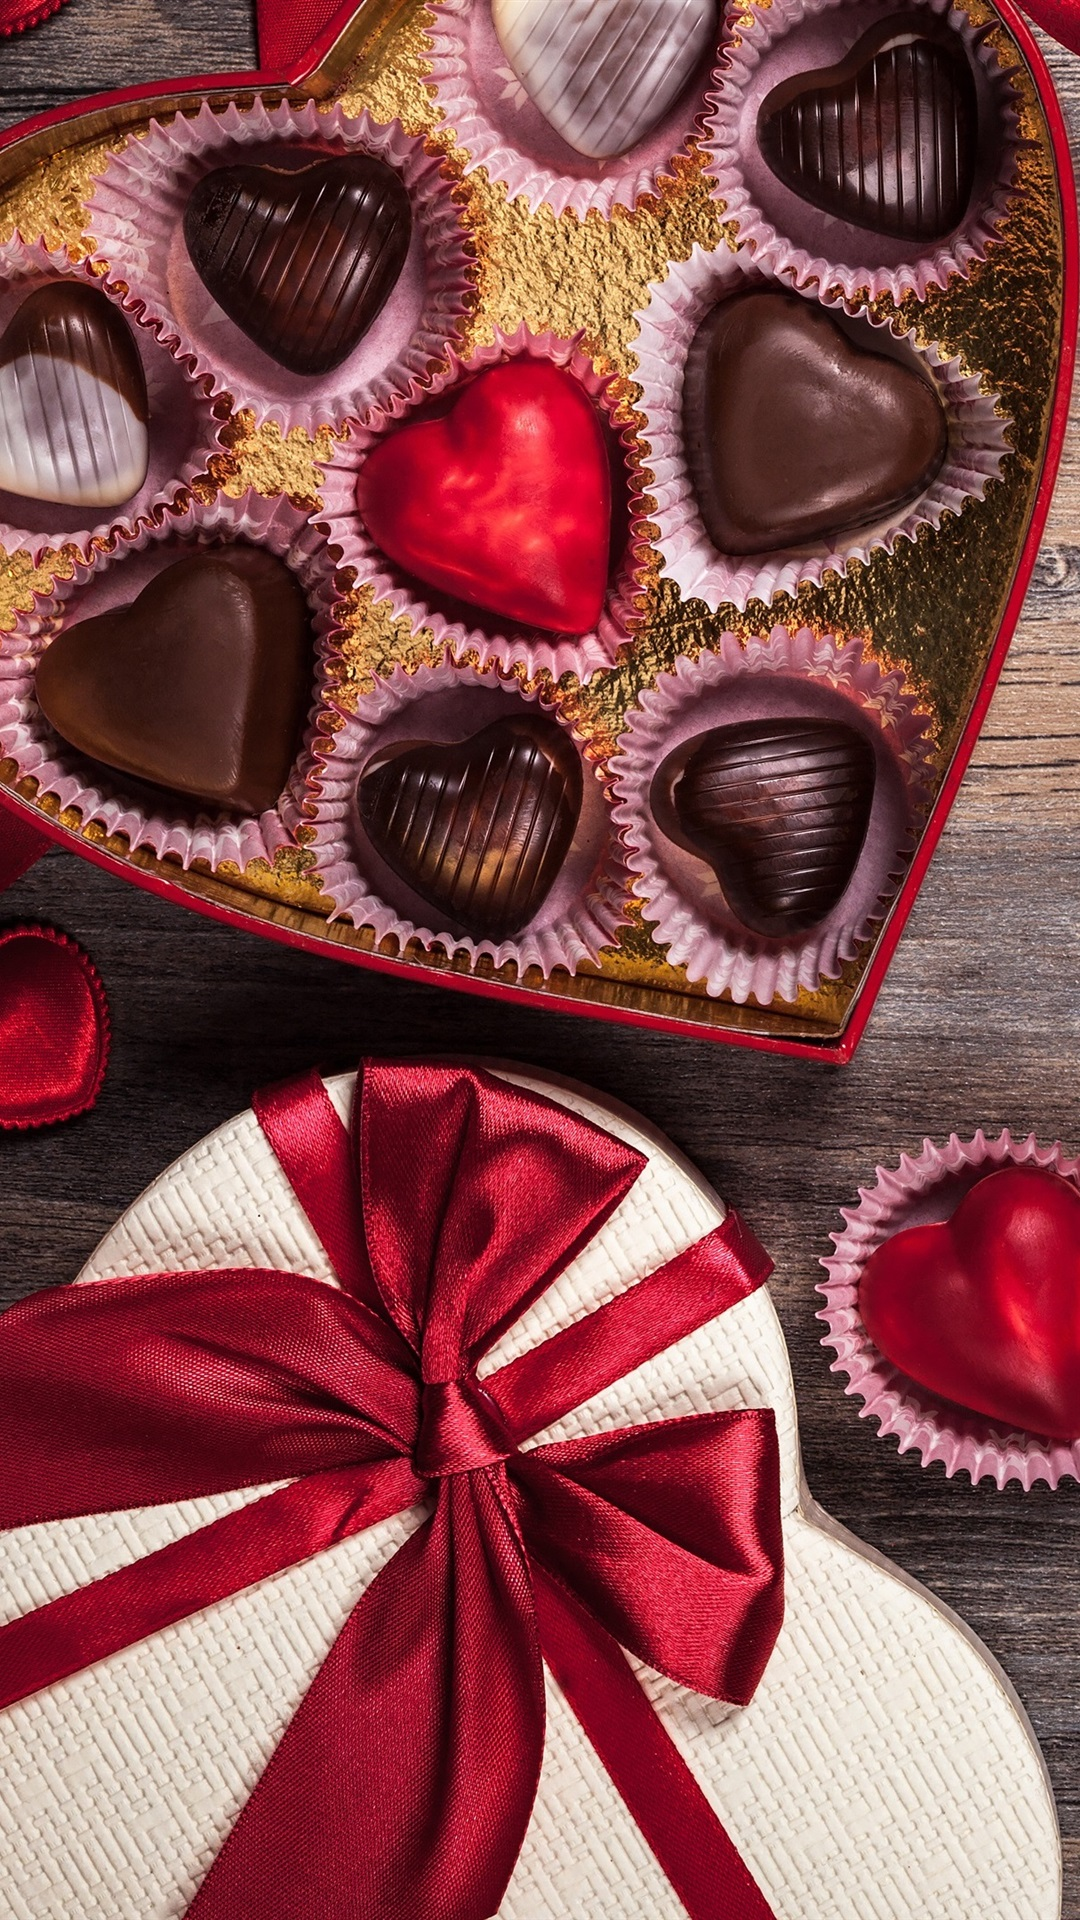 Valentine S Day Chocolate Candy Love Hearts Romantic Gift 1080x1920 Iphone 8 7 6 6s Plus Wallpaper Background Picture Image